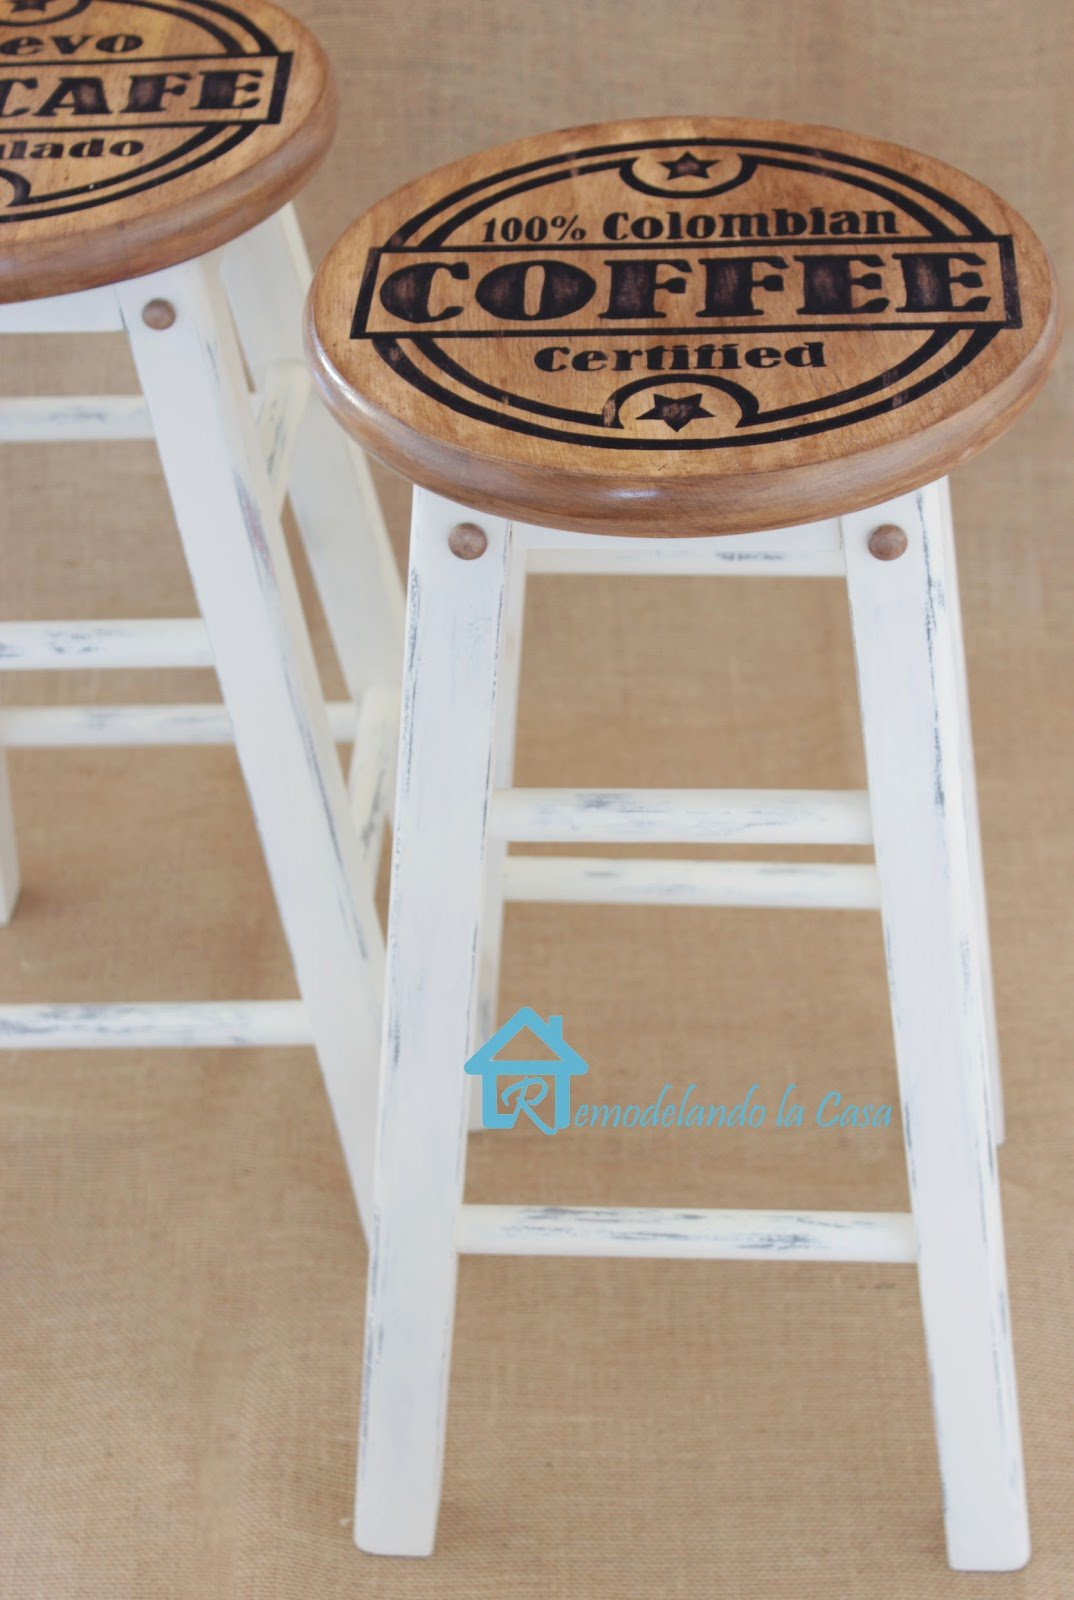 DIY Kitchen Decor Projects. Columbian Coffee Stenciled Stools. Such A Cool  DIY.